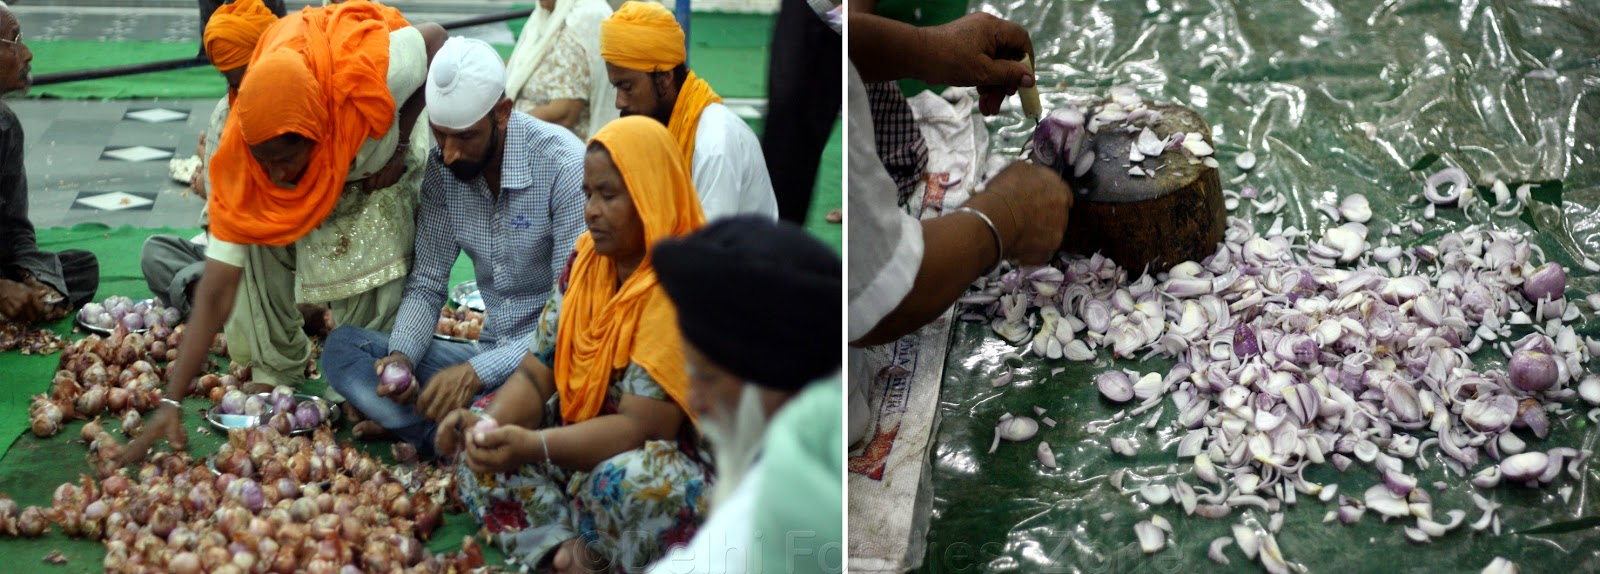 delhi foodies zone behind the scenes of golden temple langar onion chopping golden temple